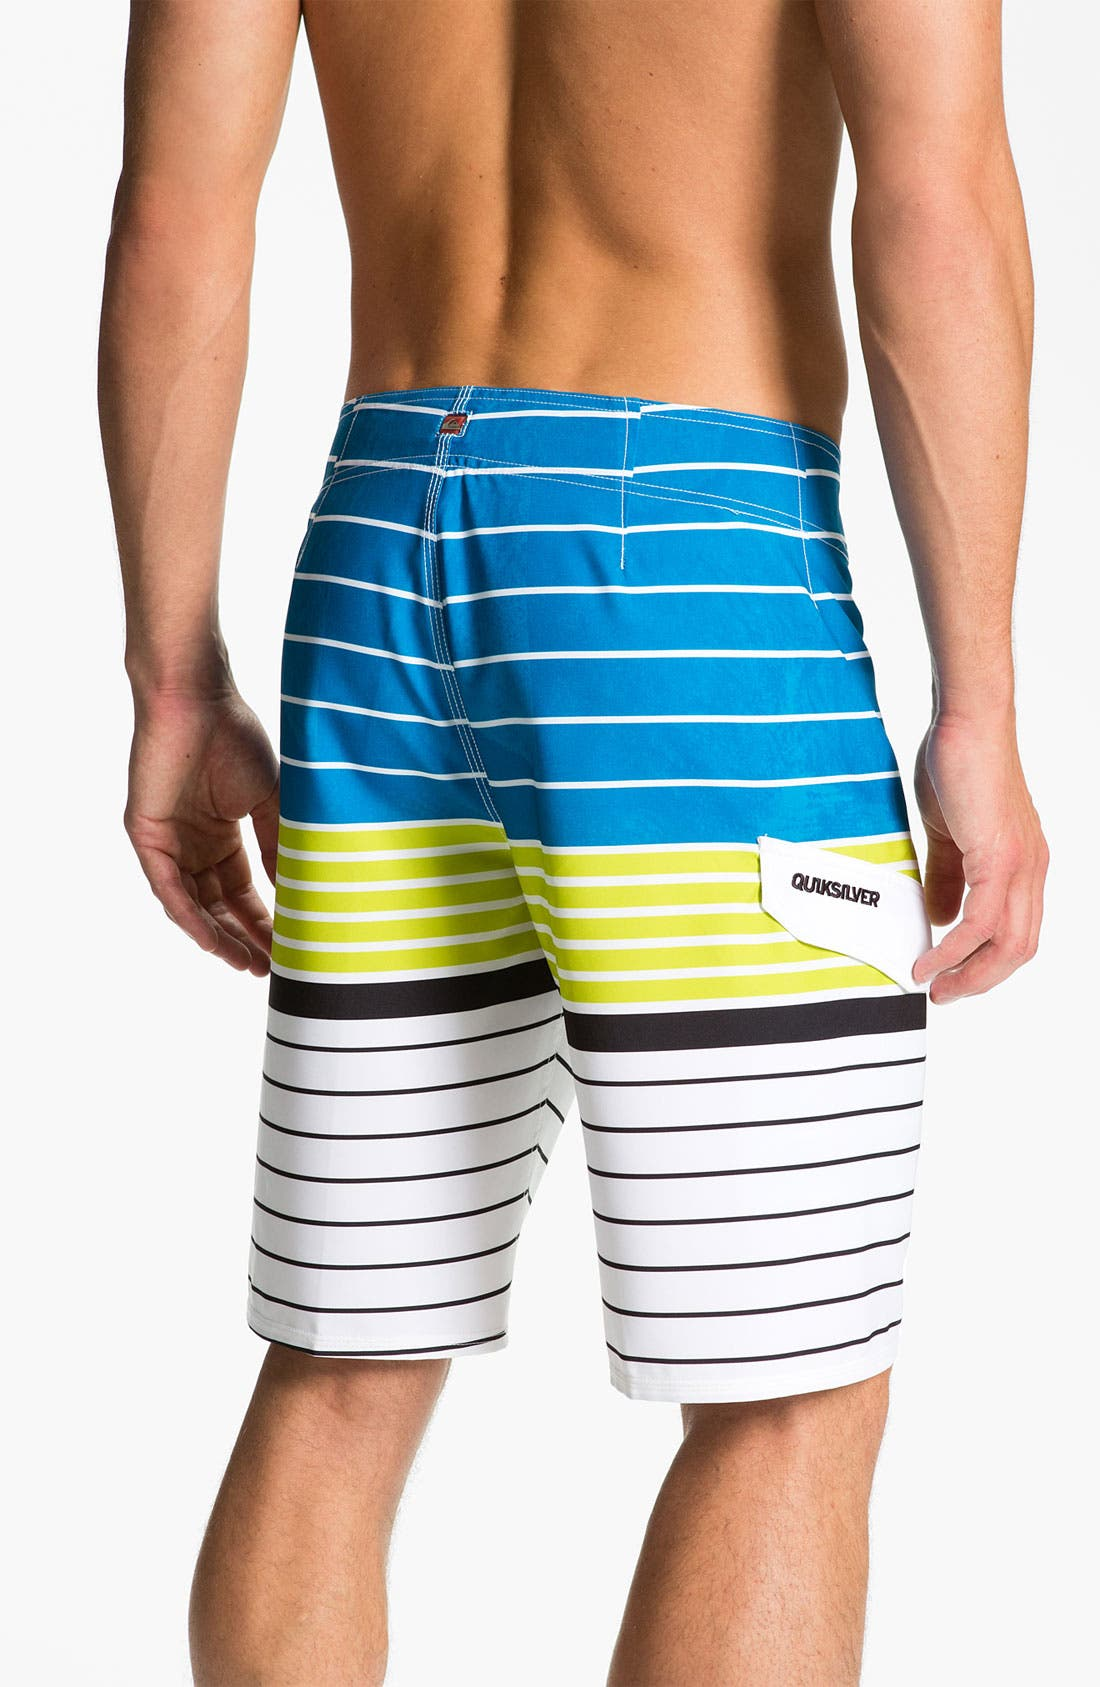 Alternate Image 2  - Quiksilver 'Trolling' Board Shorts